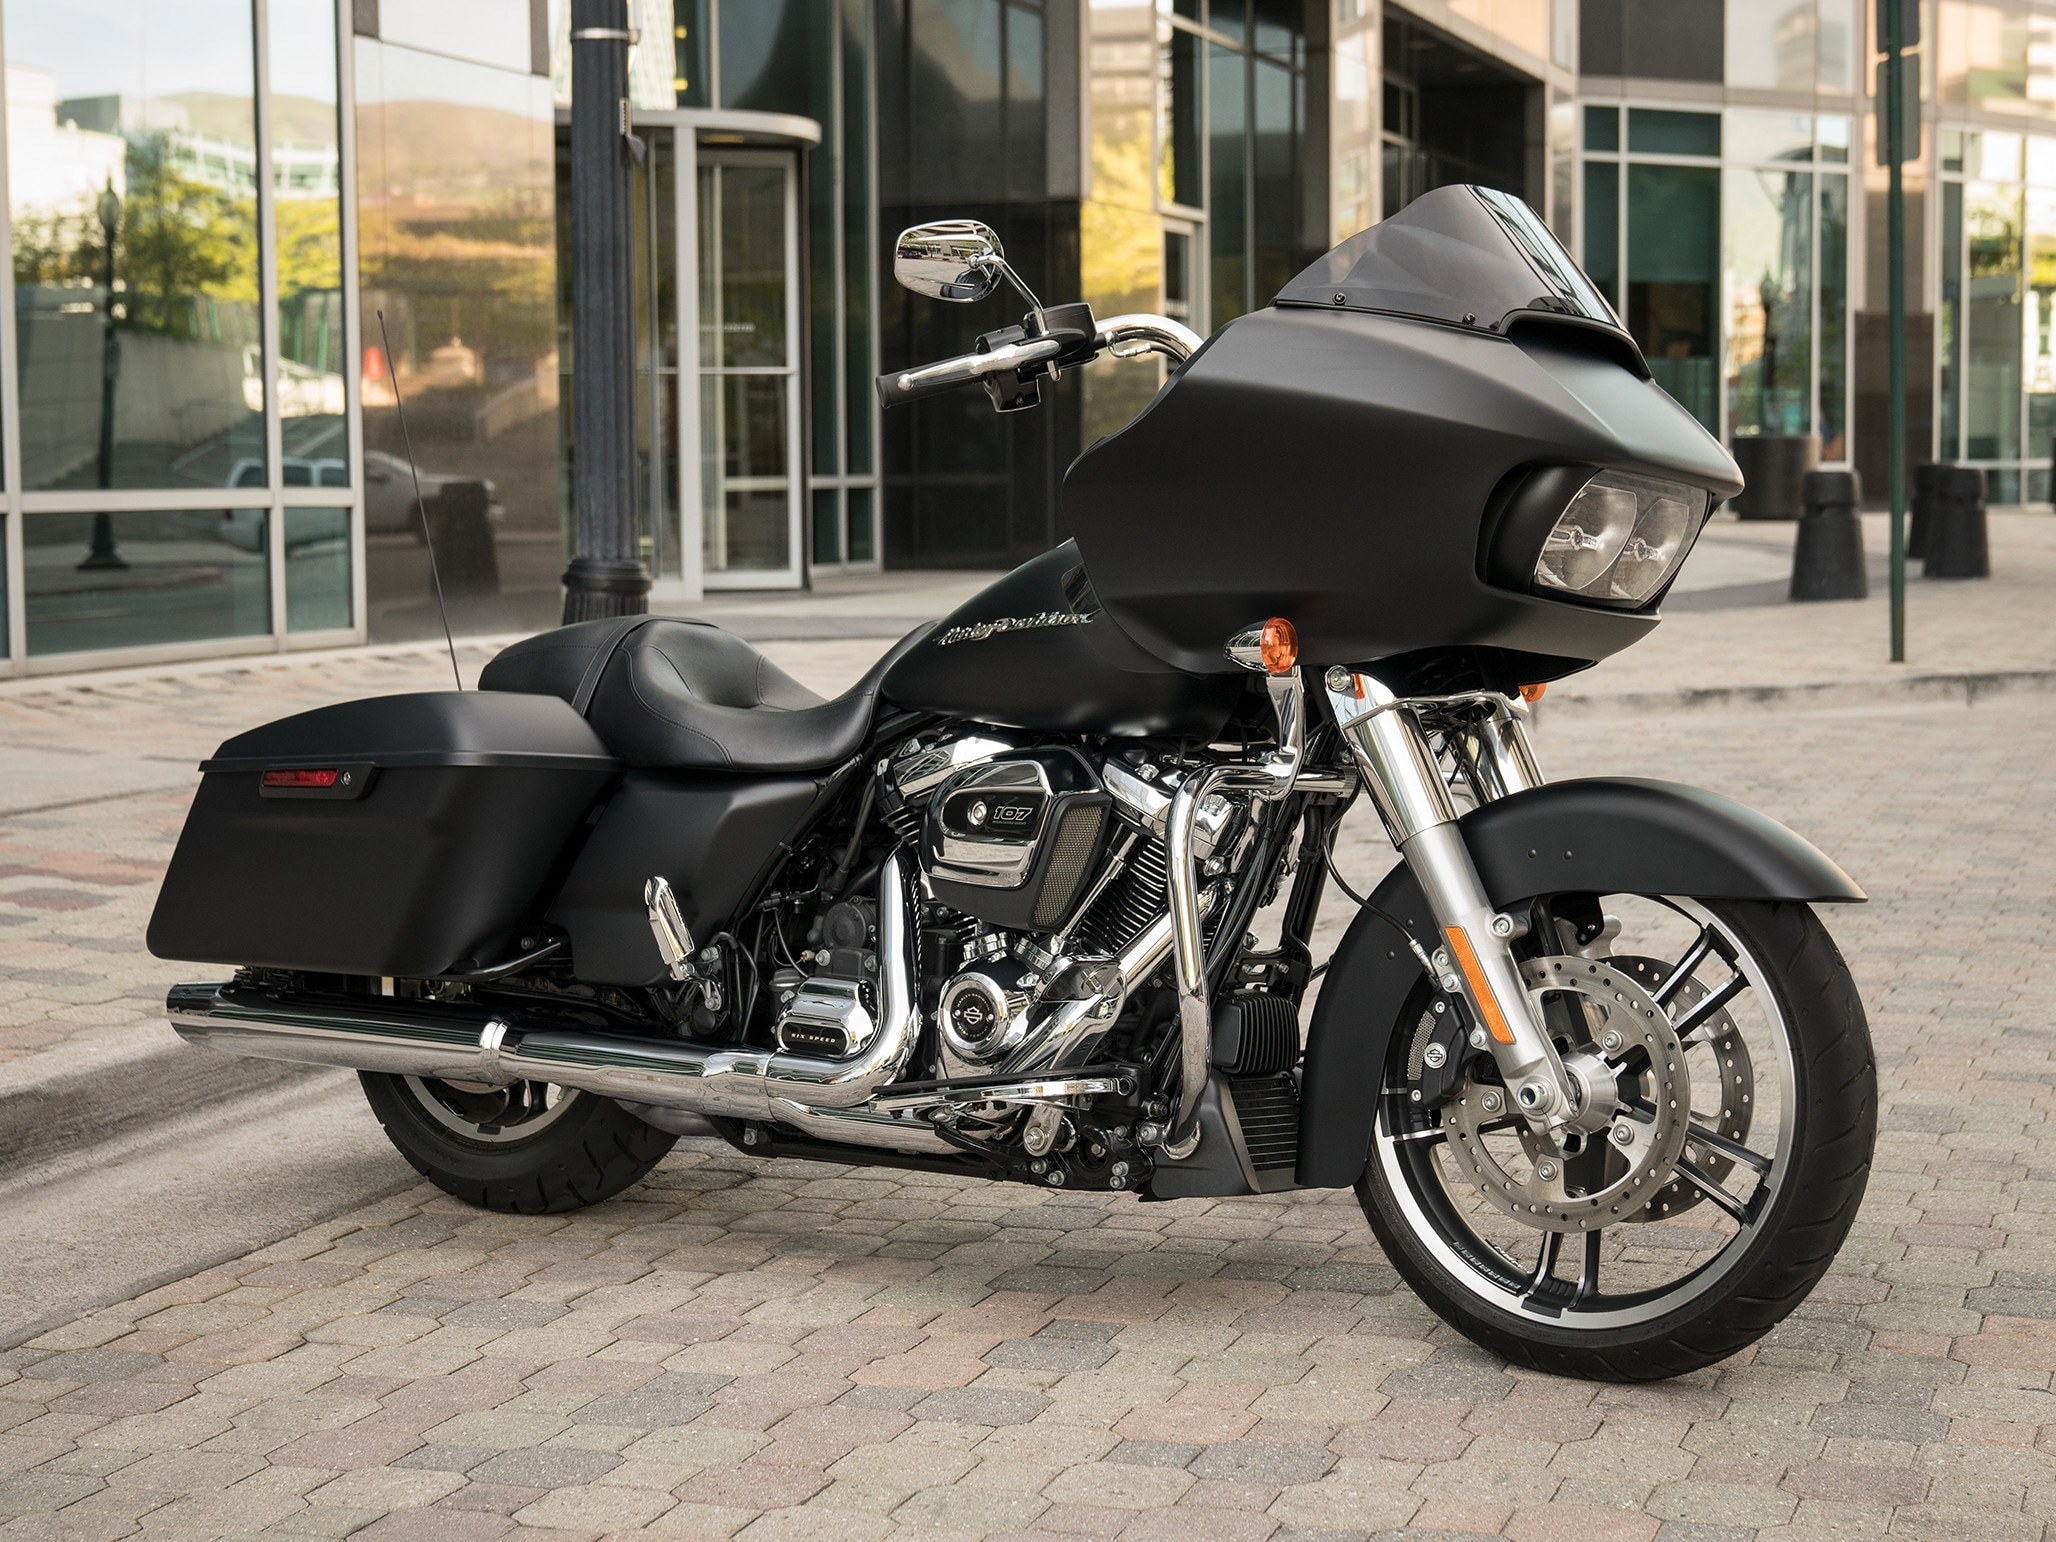 small resolution of harley revolution x engine diagram wiring library2018 road glide harley davidson usa road glide harley revolution